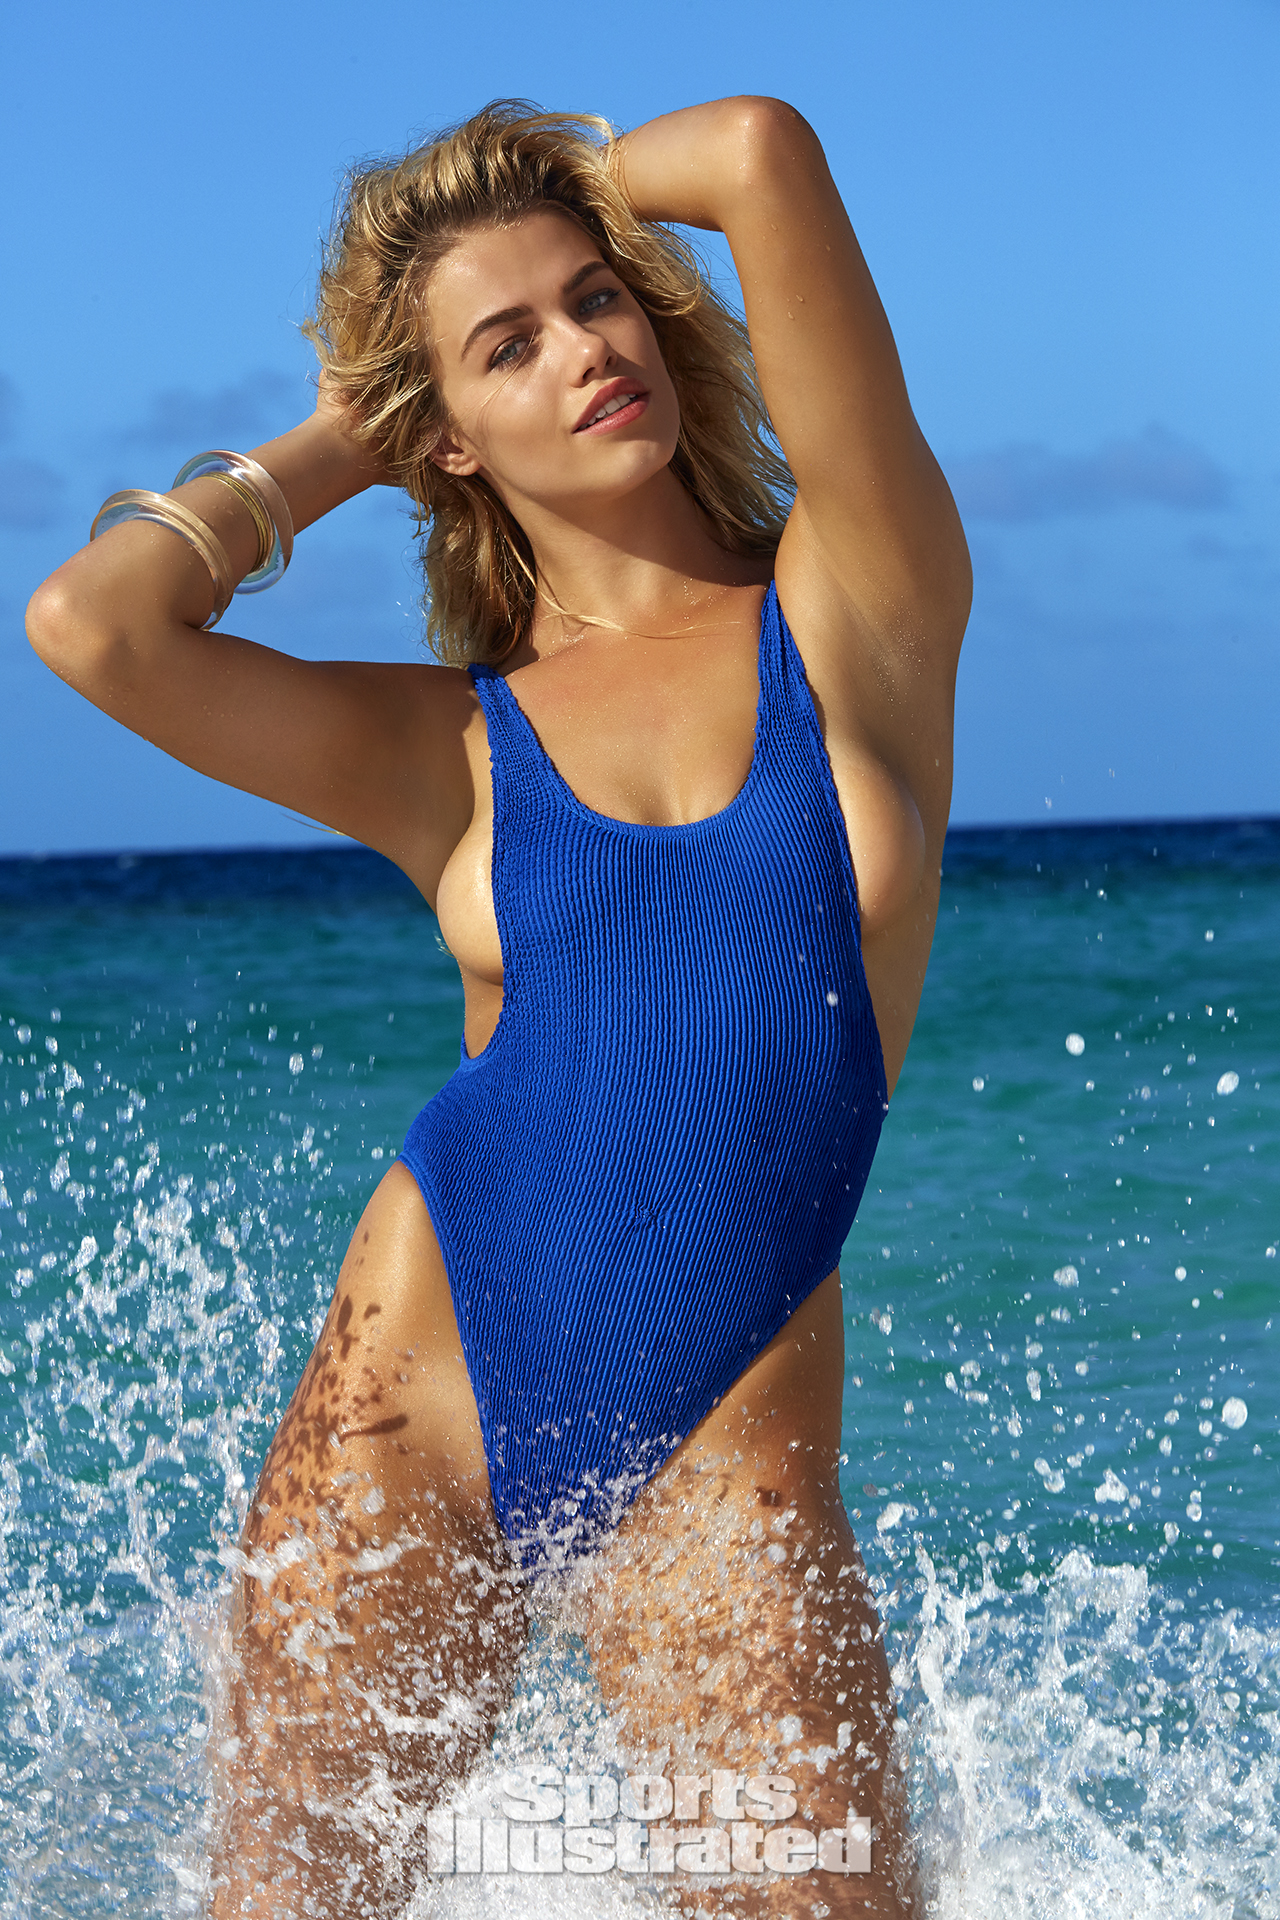 Hailey Clauson was photographed by James Macari in Turks & Caicos. Swimsuit by Bond-Eye Australia.